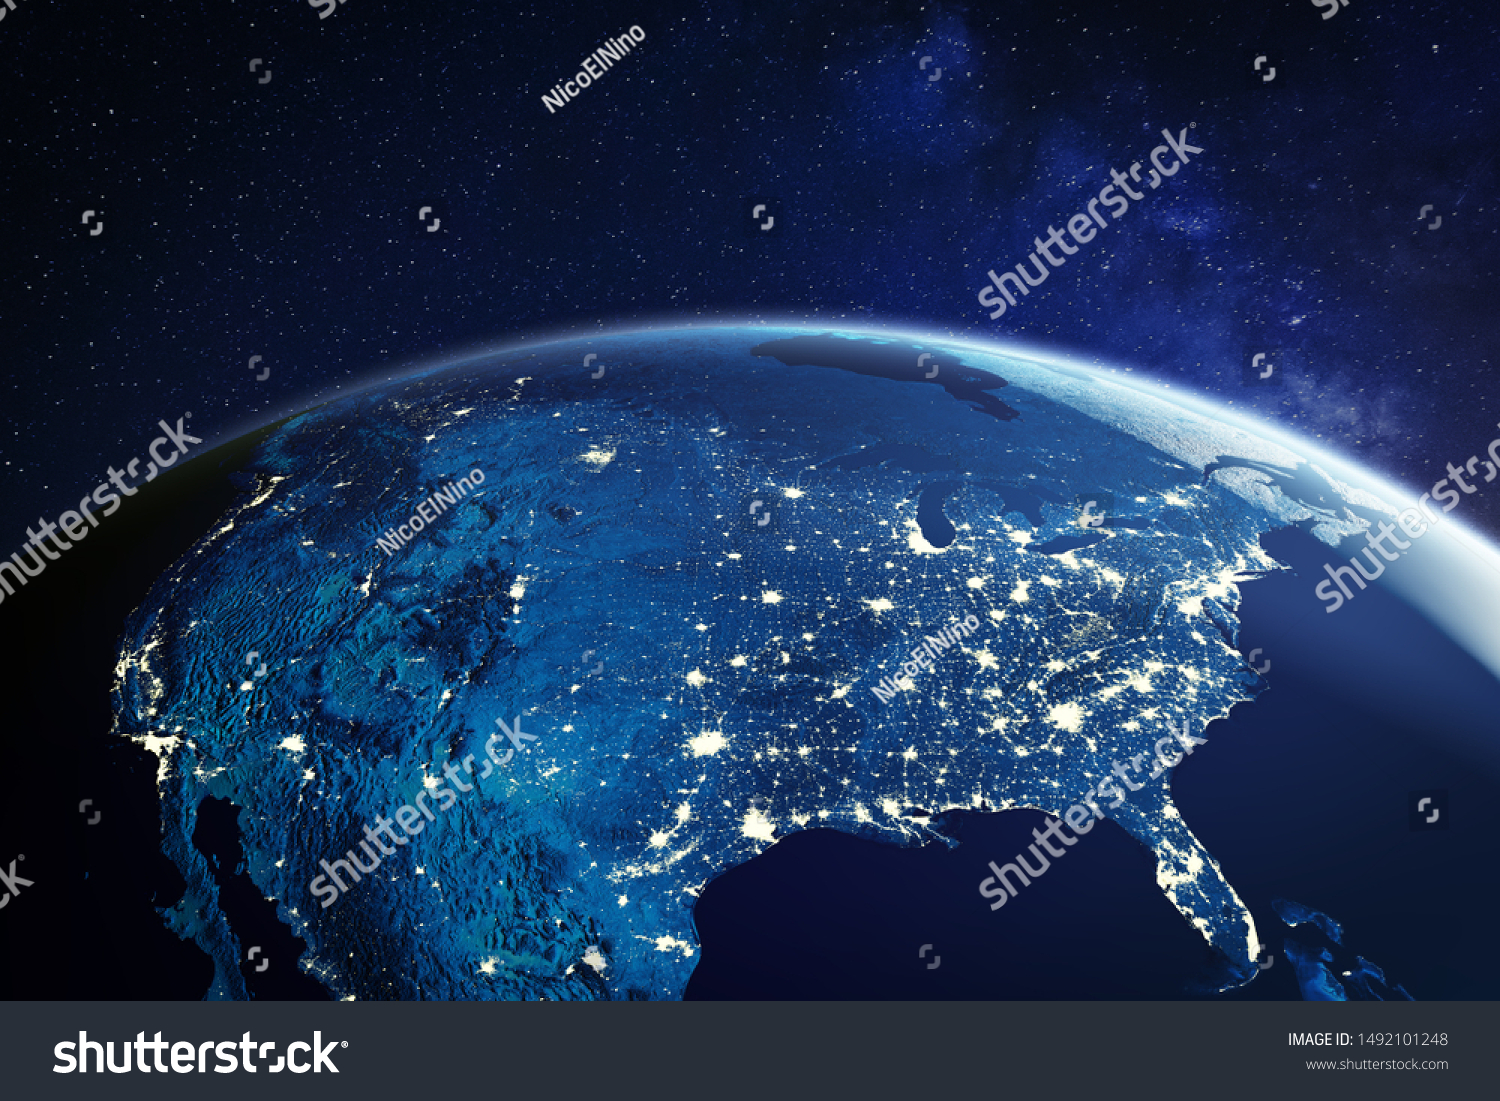 USA from space at night with city lights showing American cities in United States, global overview of North America, 3d rendering of planet Earth, elements from NASA #1492101248